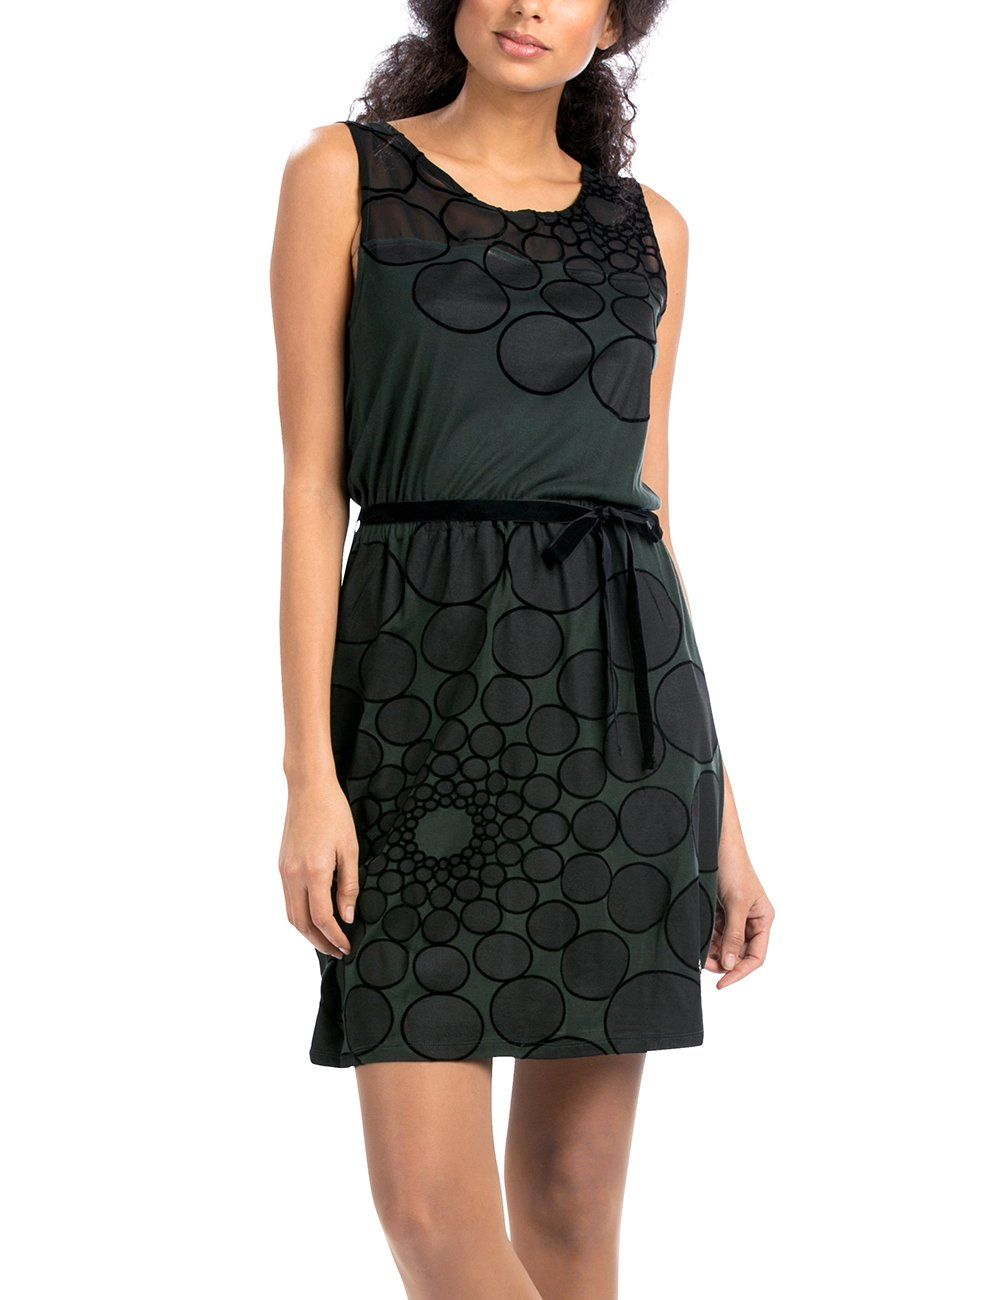 shades of release date incredible prices Desigual Arsen 56V20N7 | Desigual dress AW 2015 | Robe ...